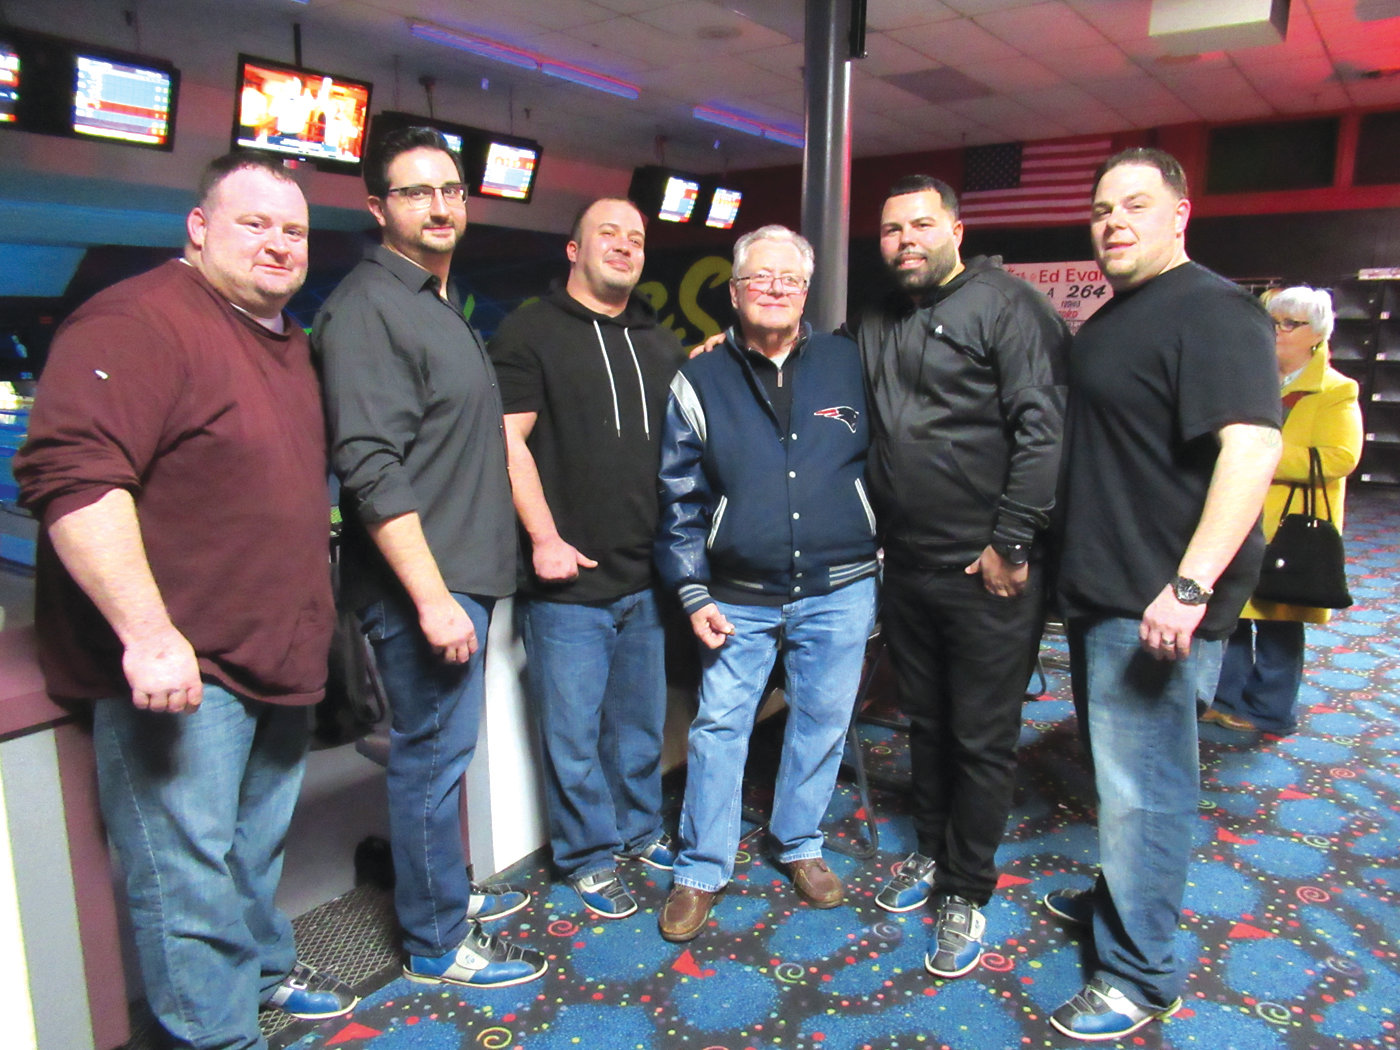 IN THE RIGHT LANE: Team J. Christopher Real Estate Group, which bowled during Saturday night's LLS fundraiser, included Onyx Del Sal, Dan Brown, David Ferranti, Ray Zanni, Jarrod Lewis and Kevin Brown.